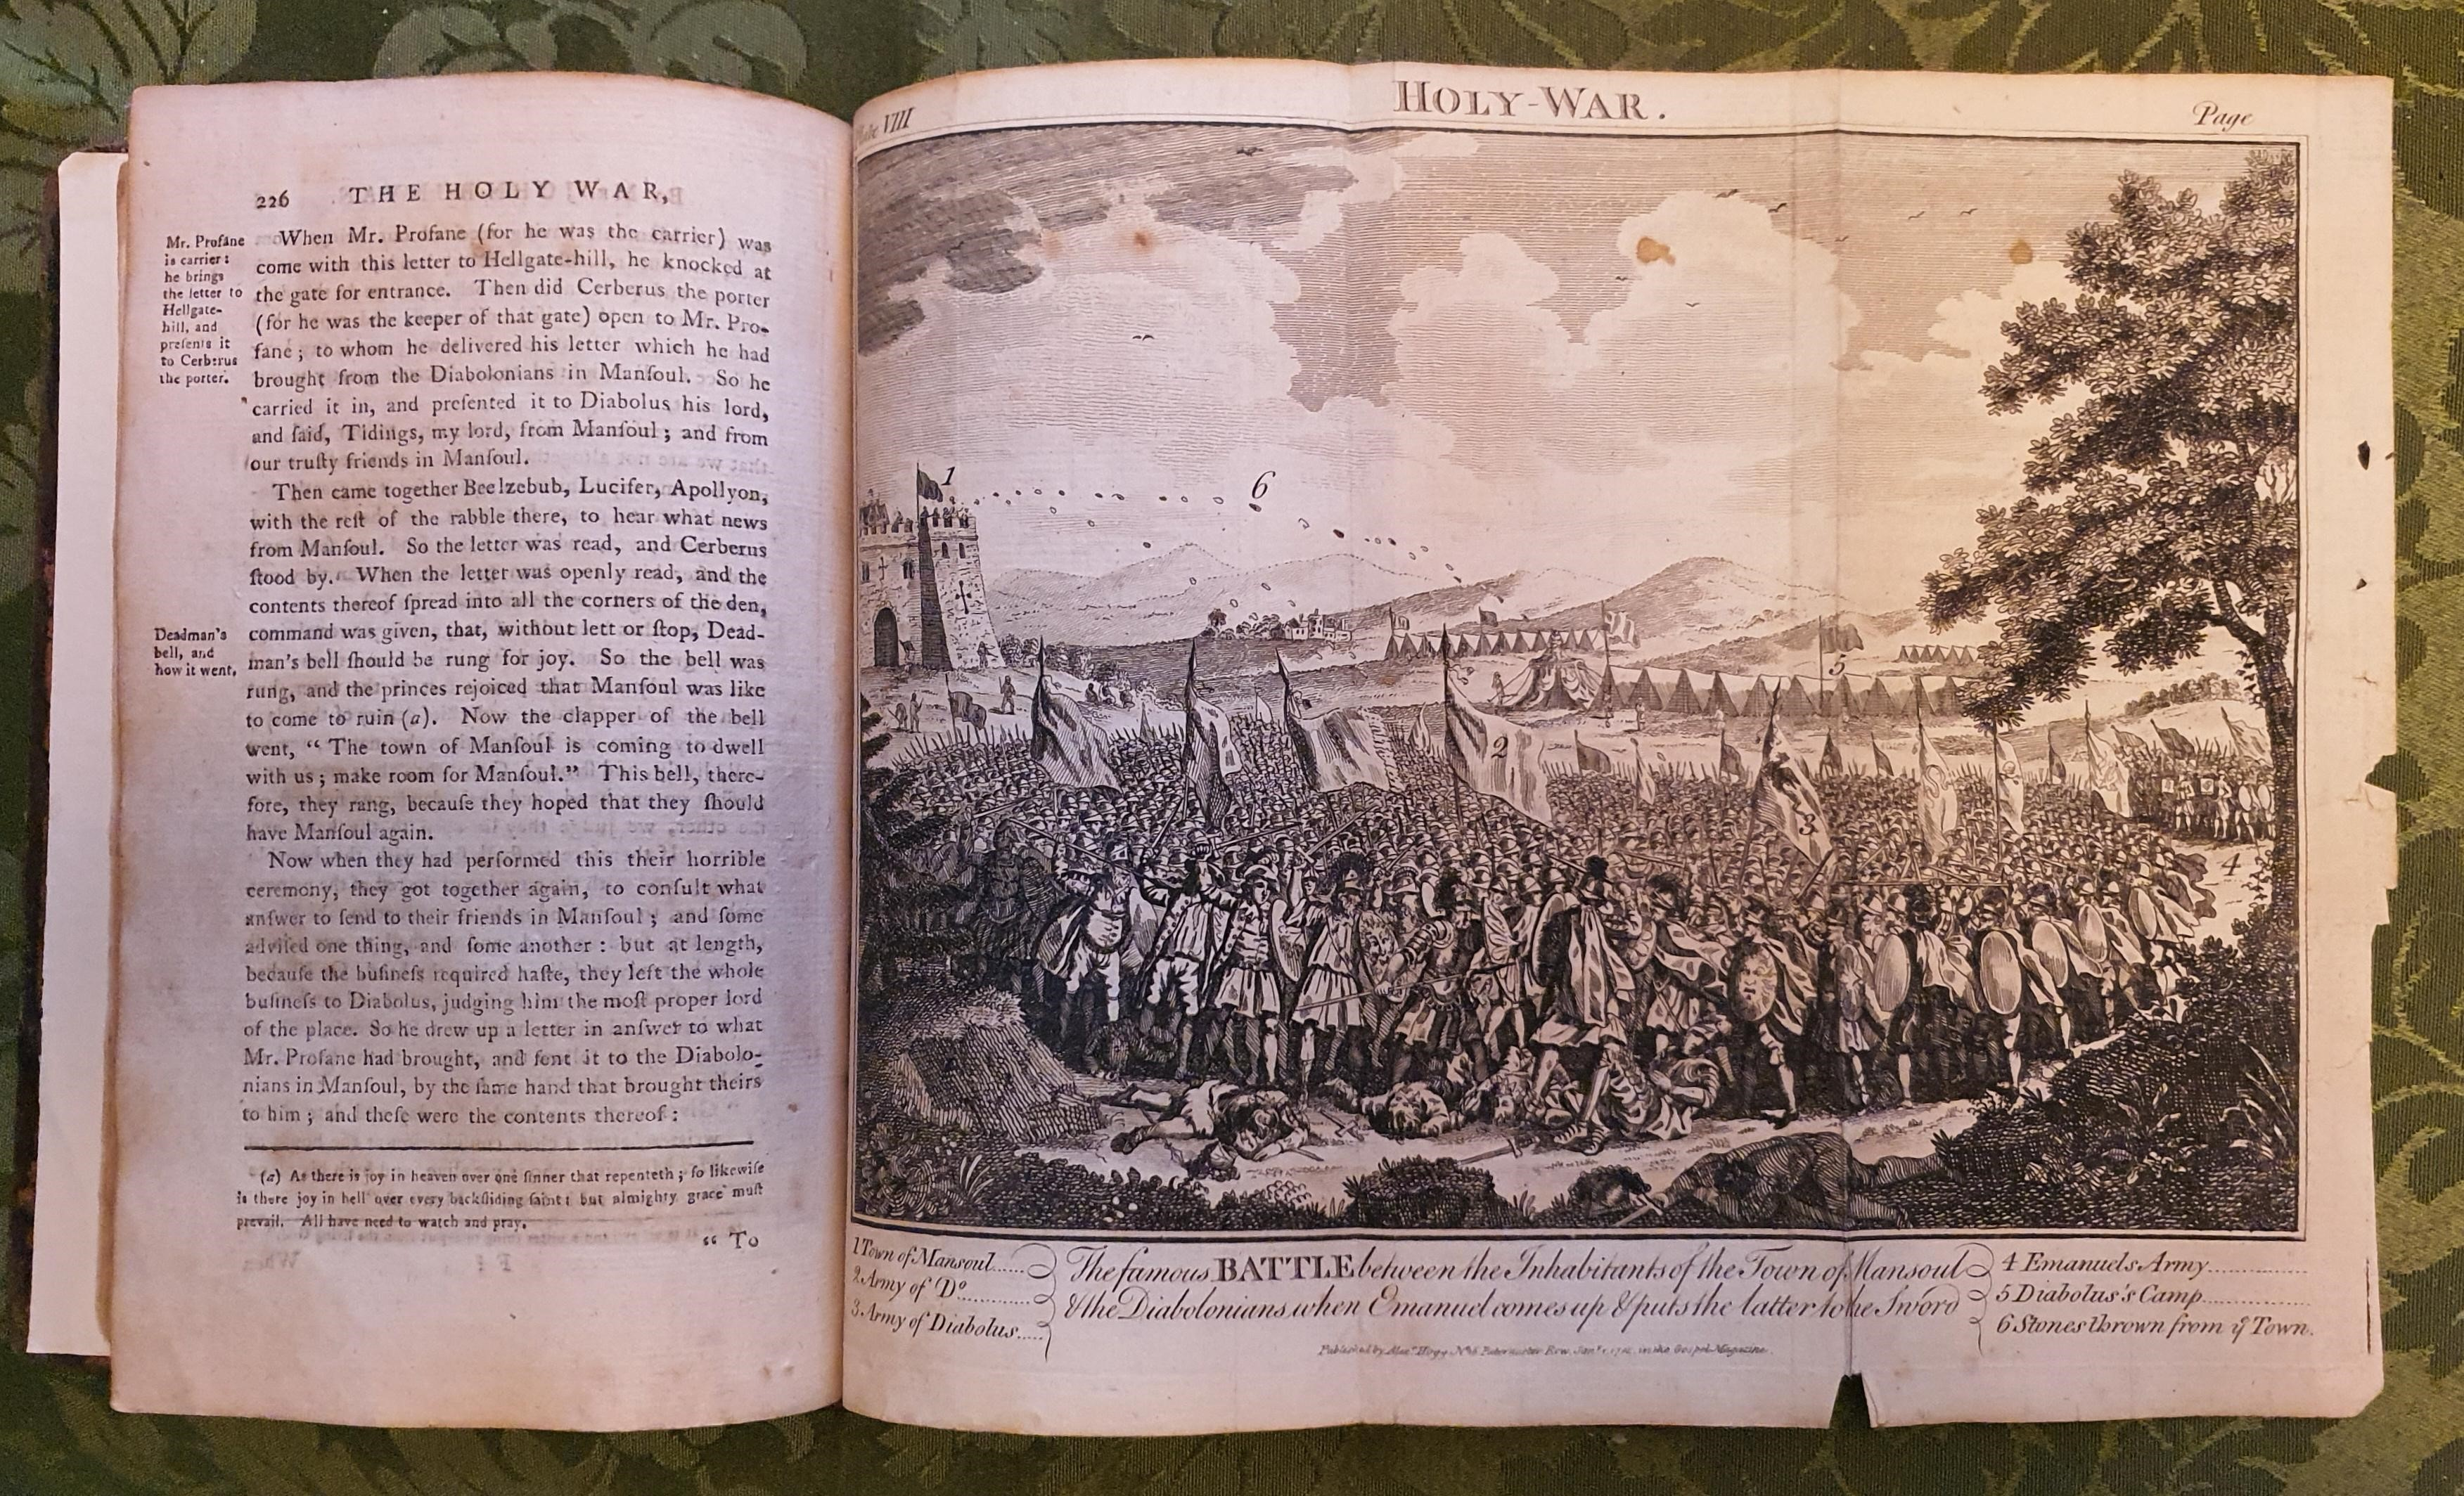 Image for The Holy War made by Shaddai upon Diabolus. For the Regaining of the Metropolis of the World or the Losing and Taking again of the town Mansoul. By Mr. John Bunyan... New and Correct Edition Illustrated with Notes... By W. Mason